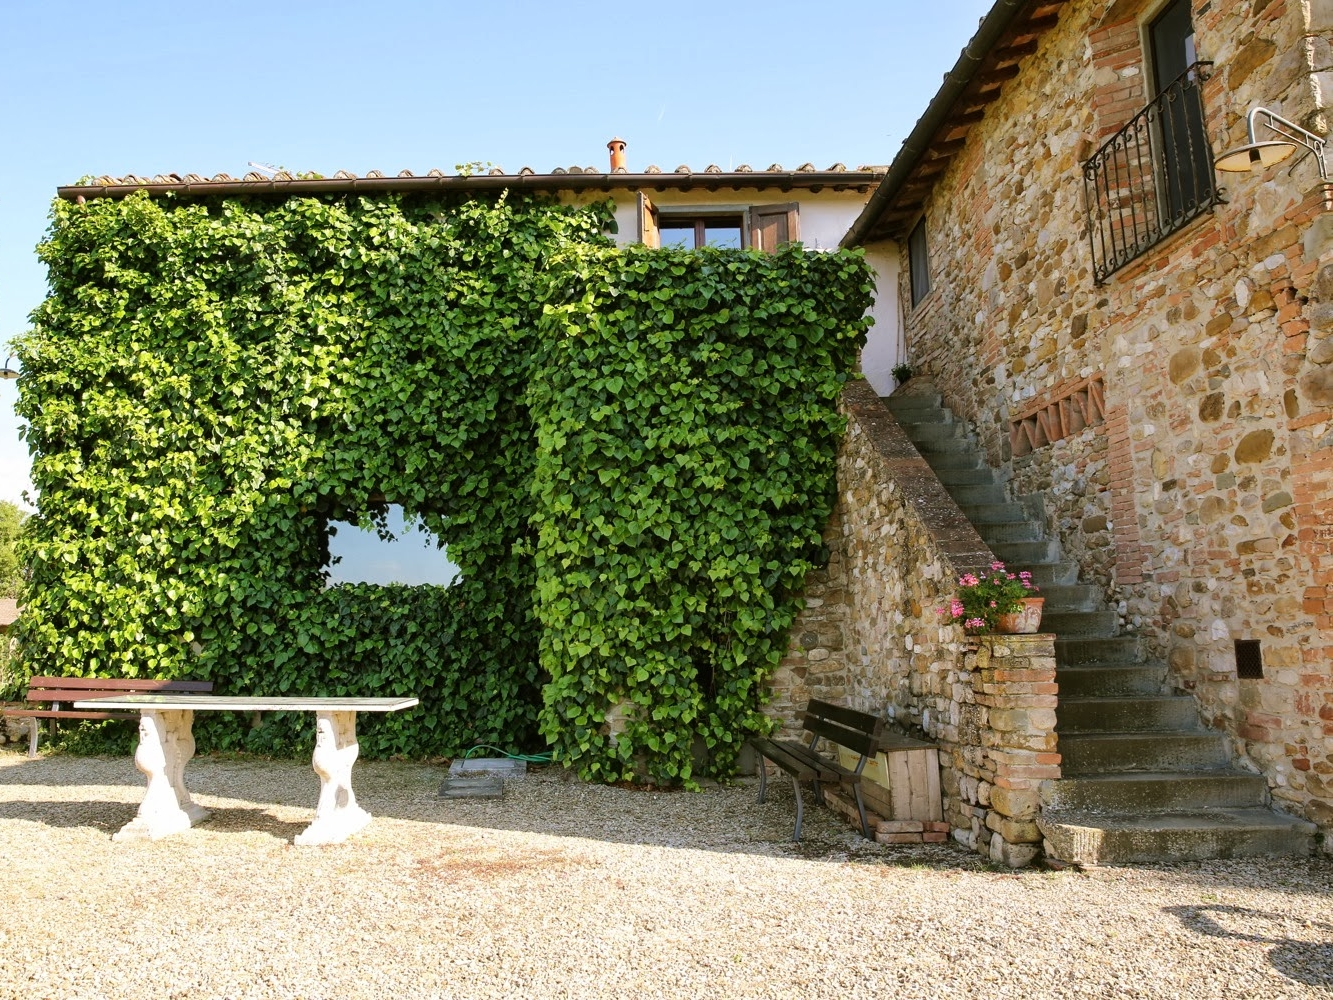 VILLA IVANA - A relaxed and rustic farmhouse surrounded by vineyards. Accommodation onsite for approximately 35 guests.Read More...